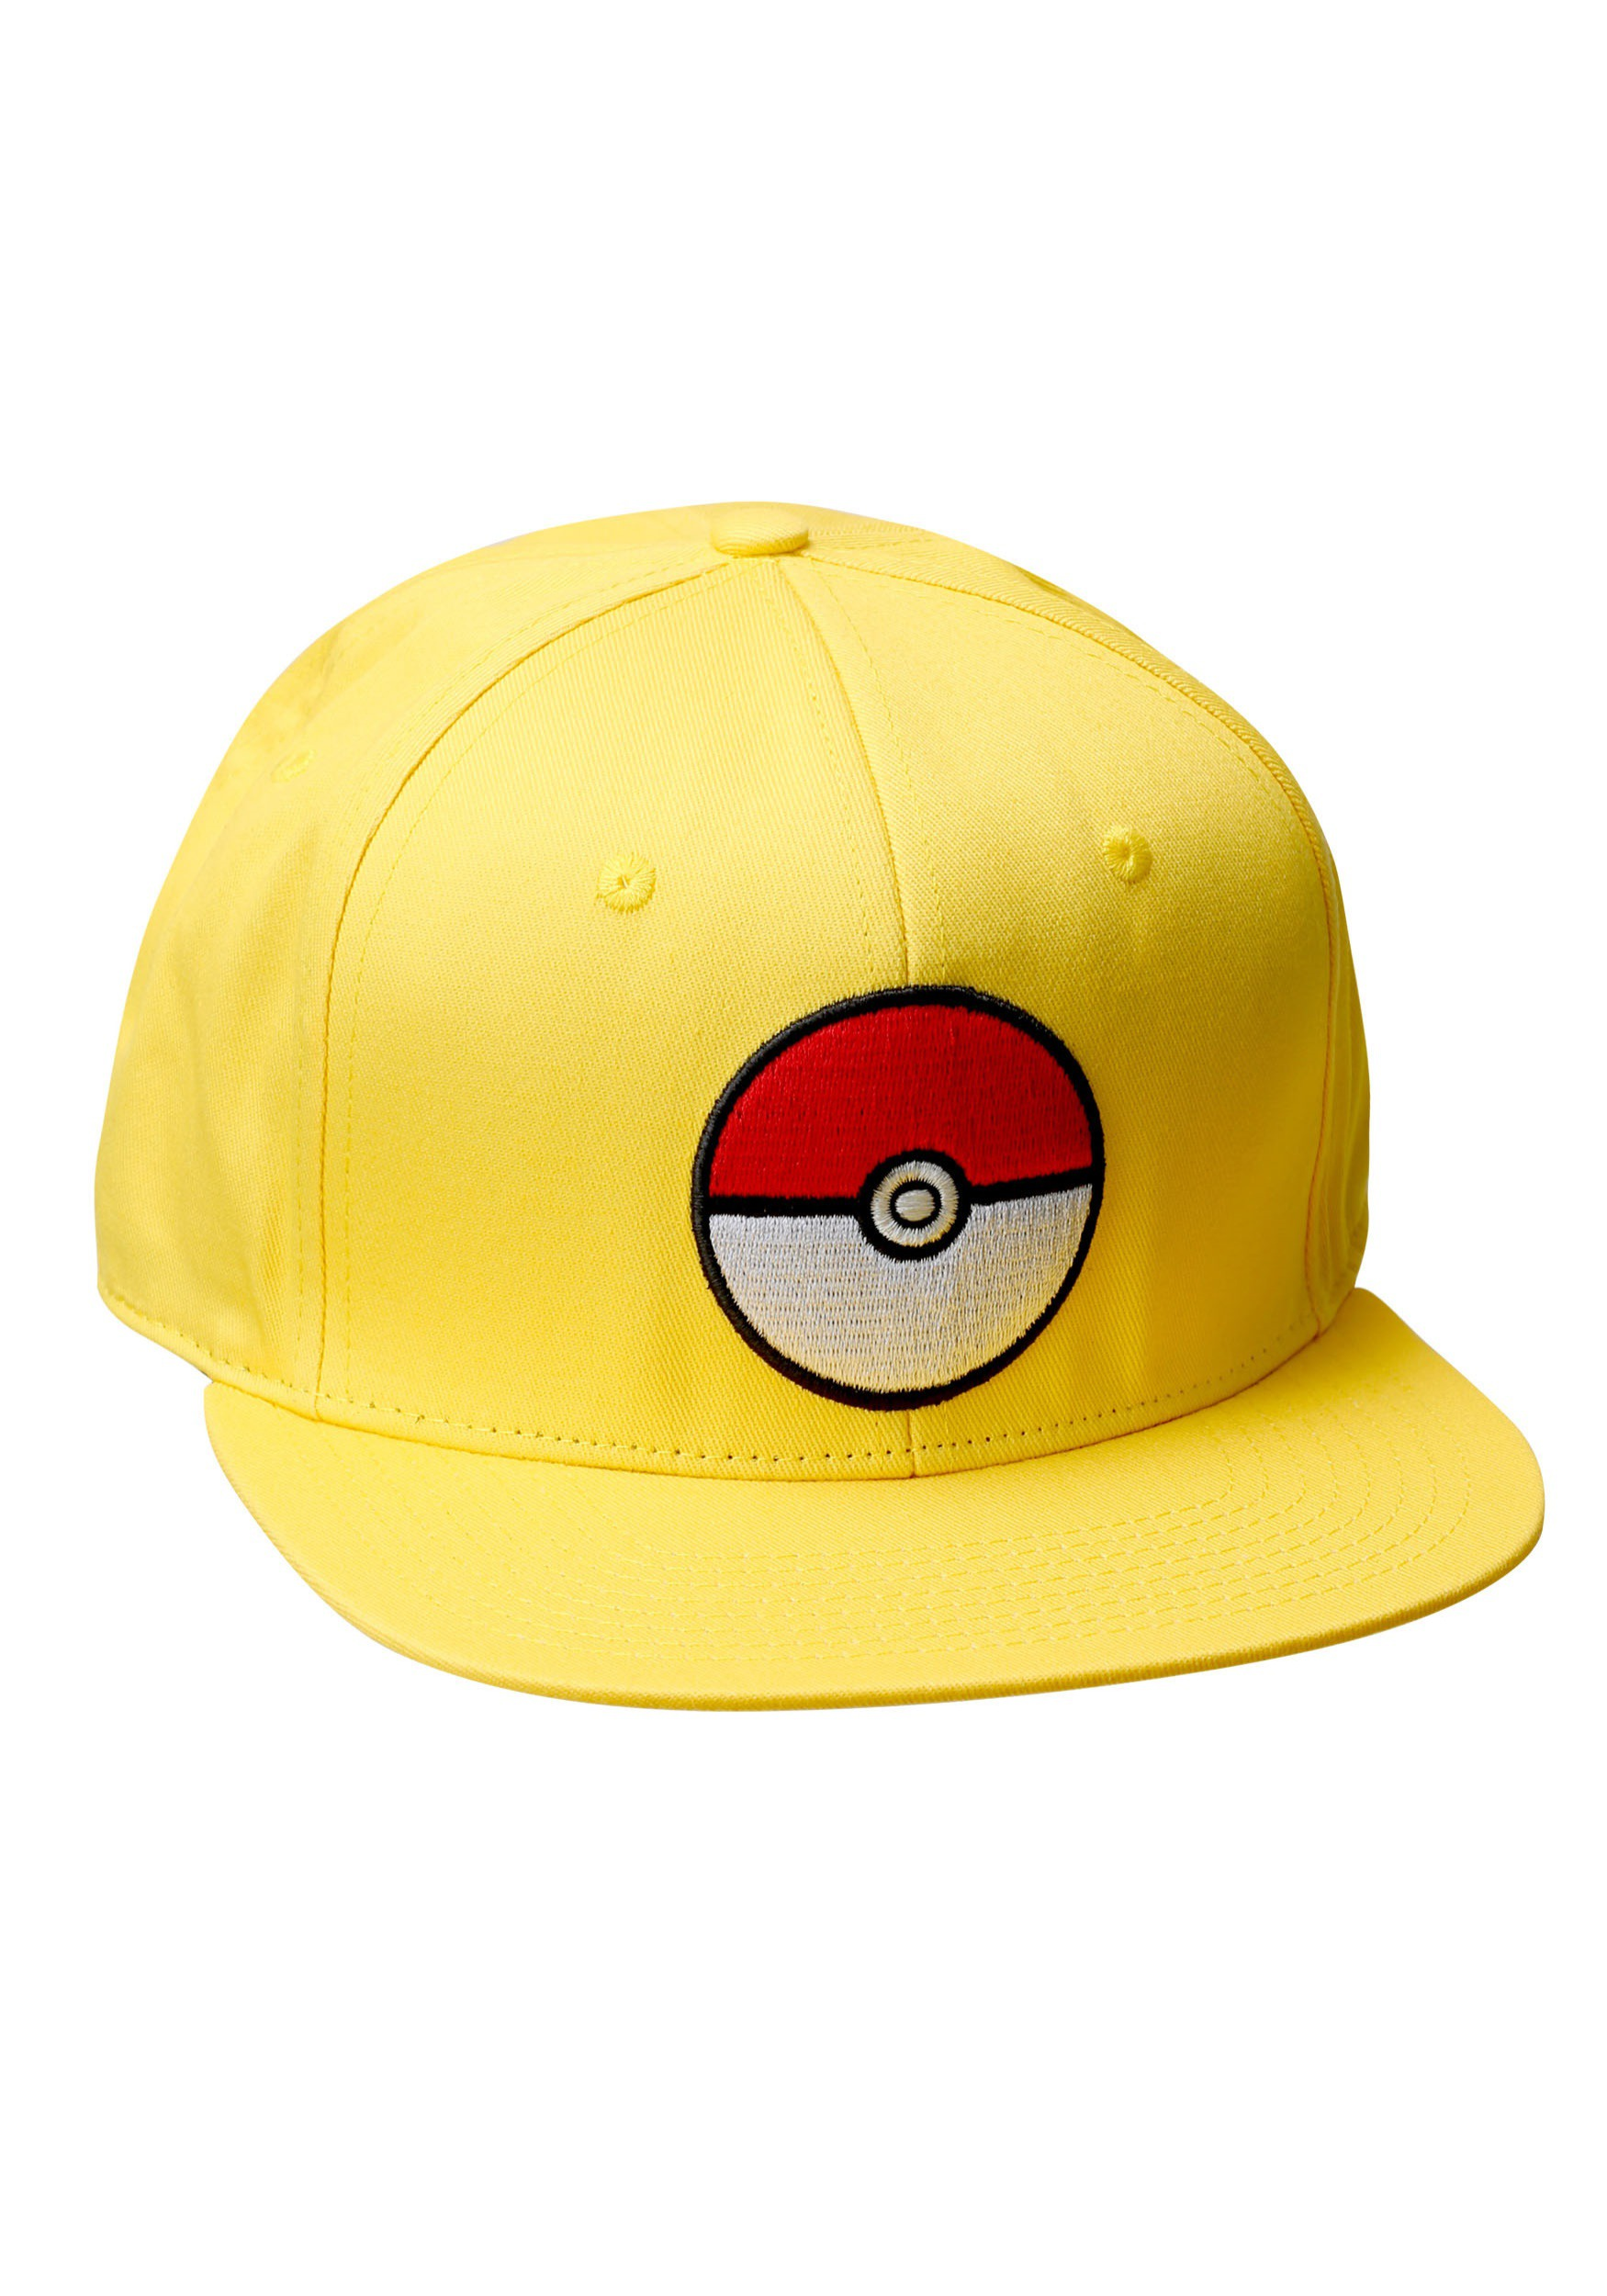 47478faf1e5 pokemon-pokeball-trainer-yellow-snapback-hat-.jpg